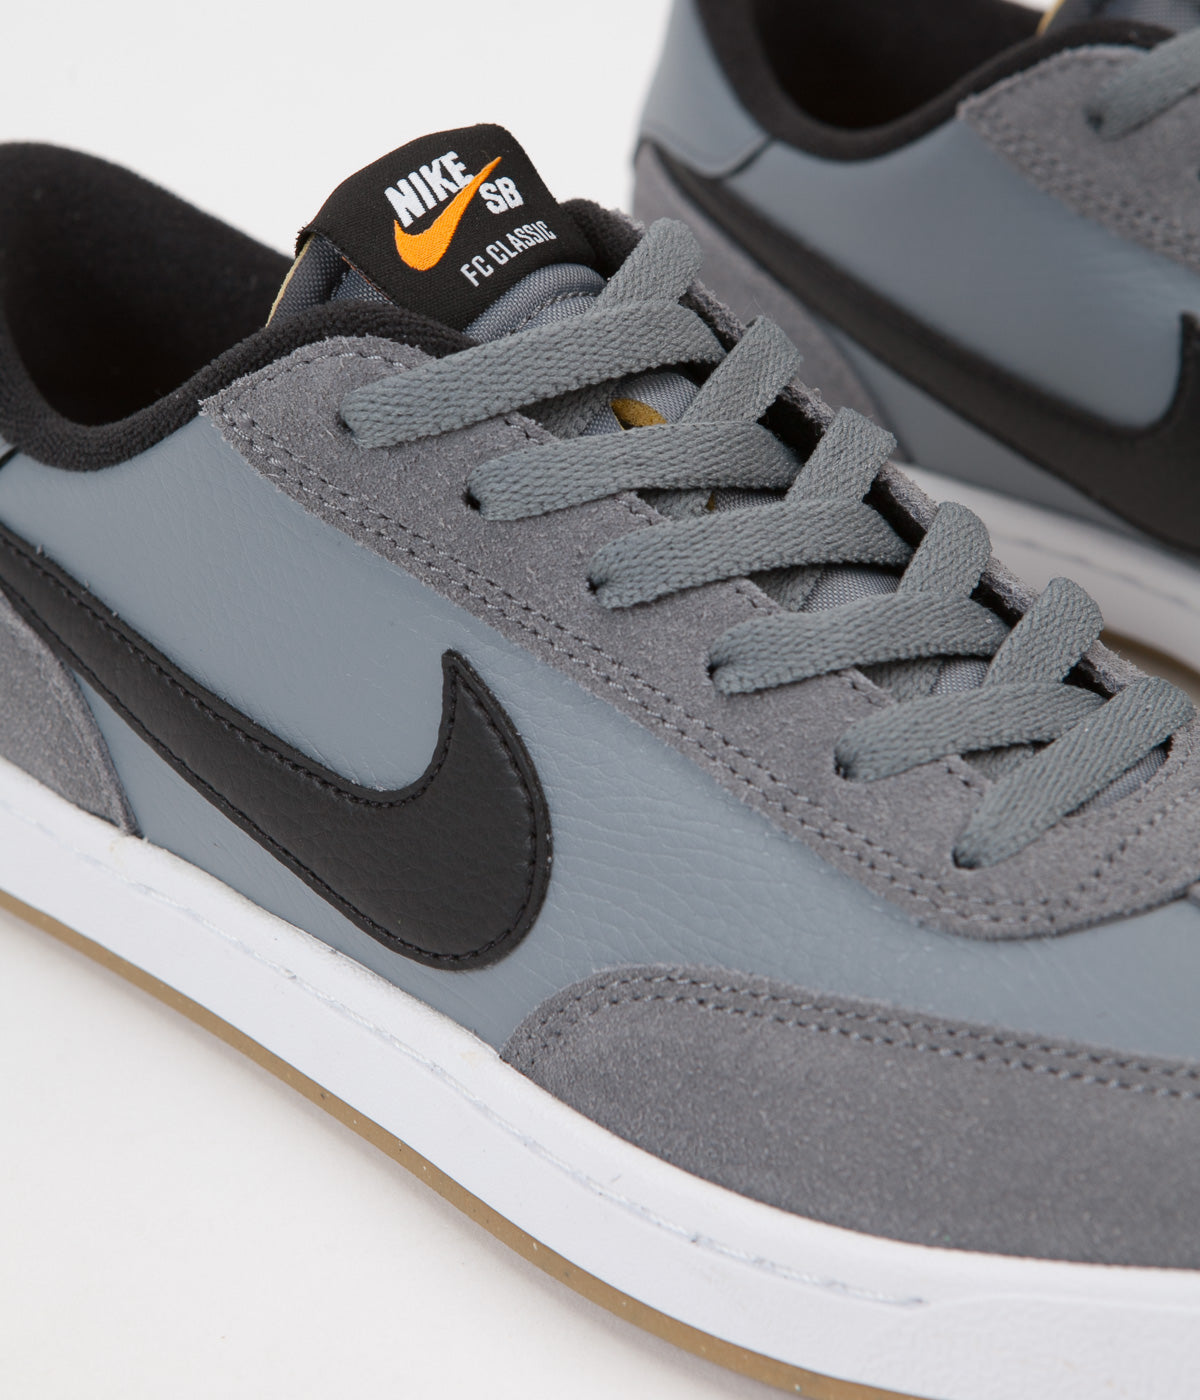 Nike SB FC Classic Shoes - Cool Grey / Black - White - Vivid Orange